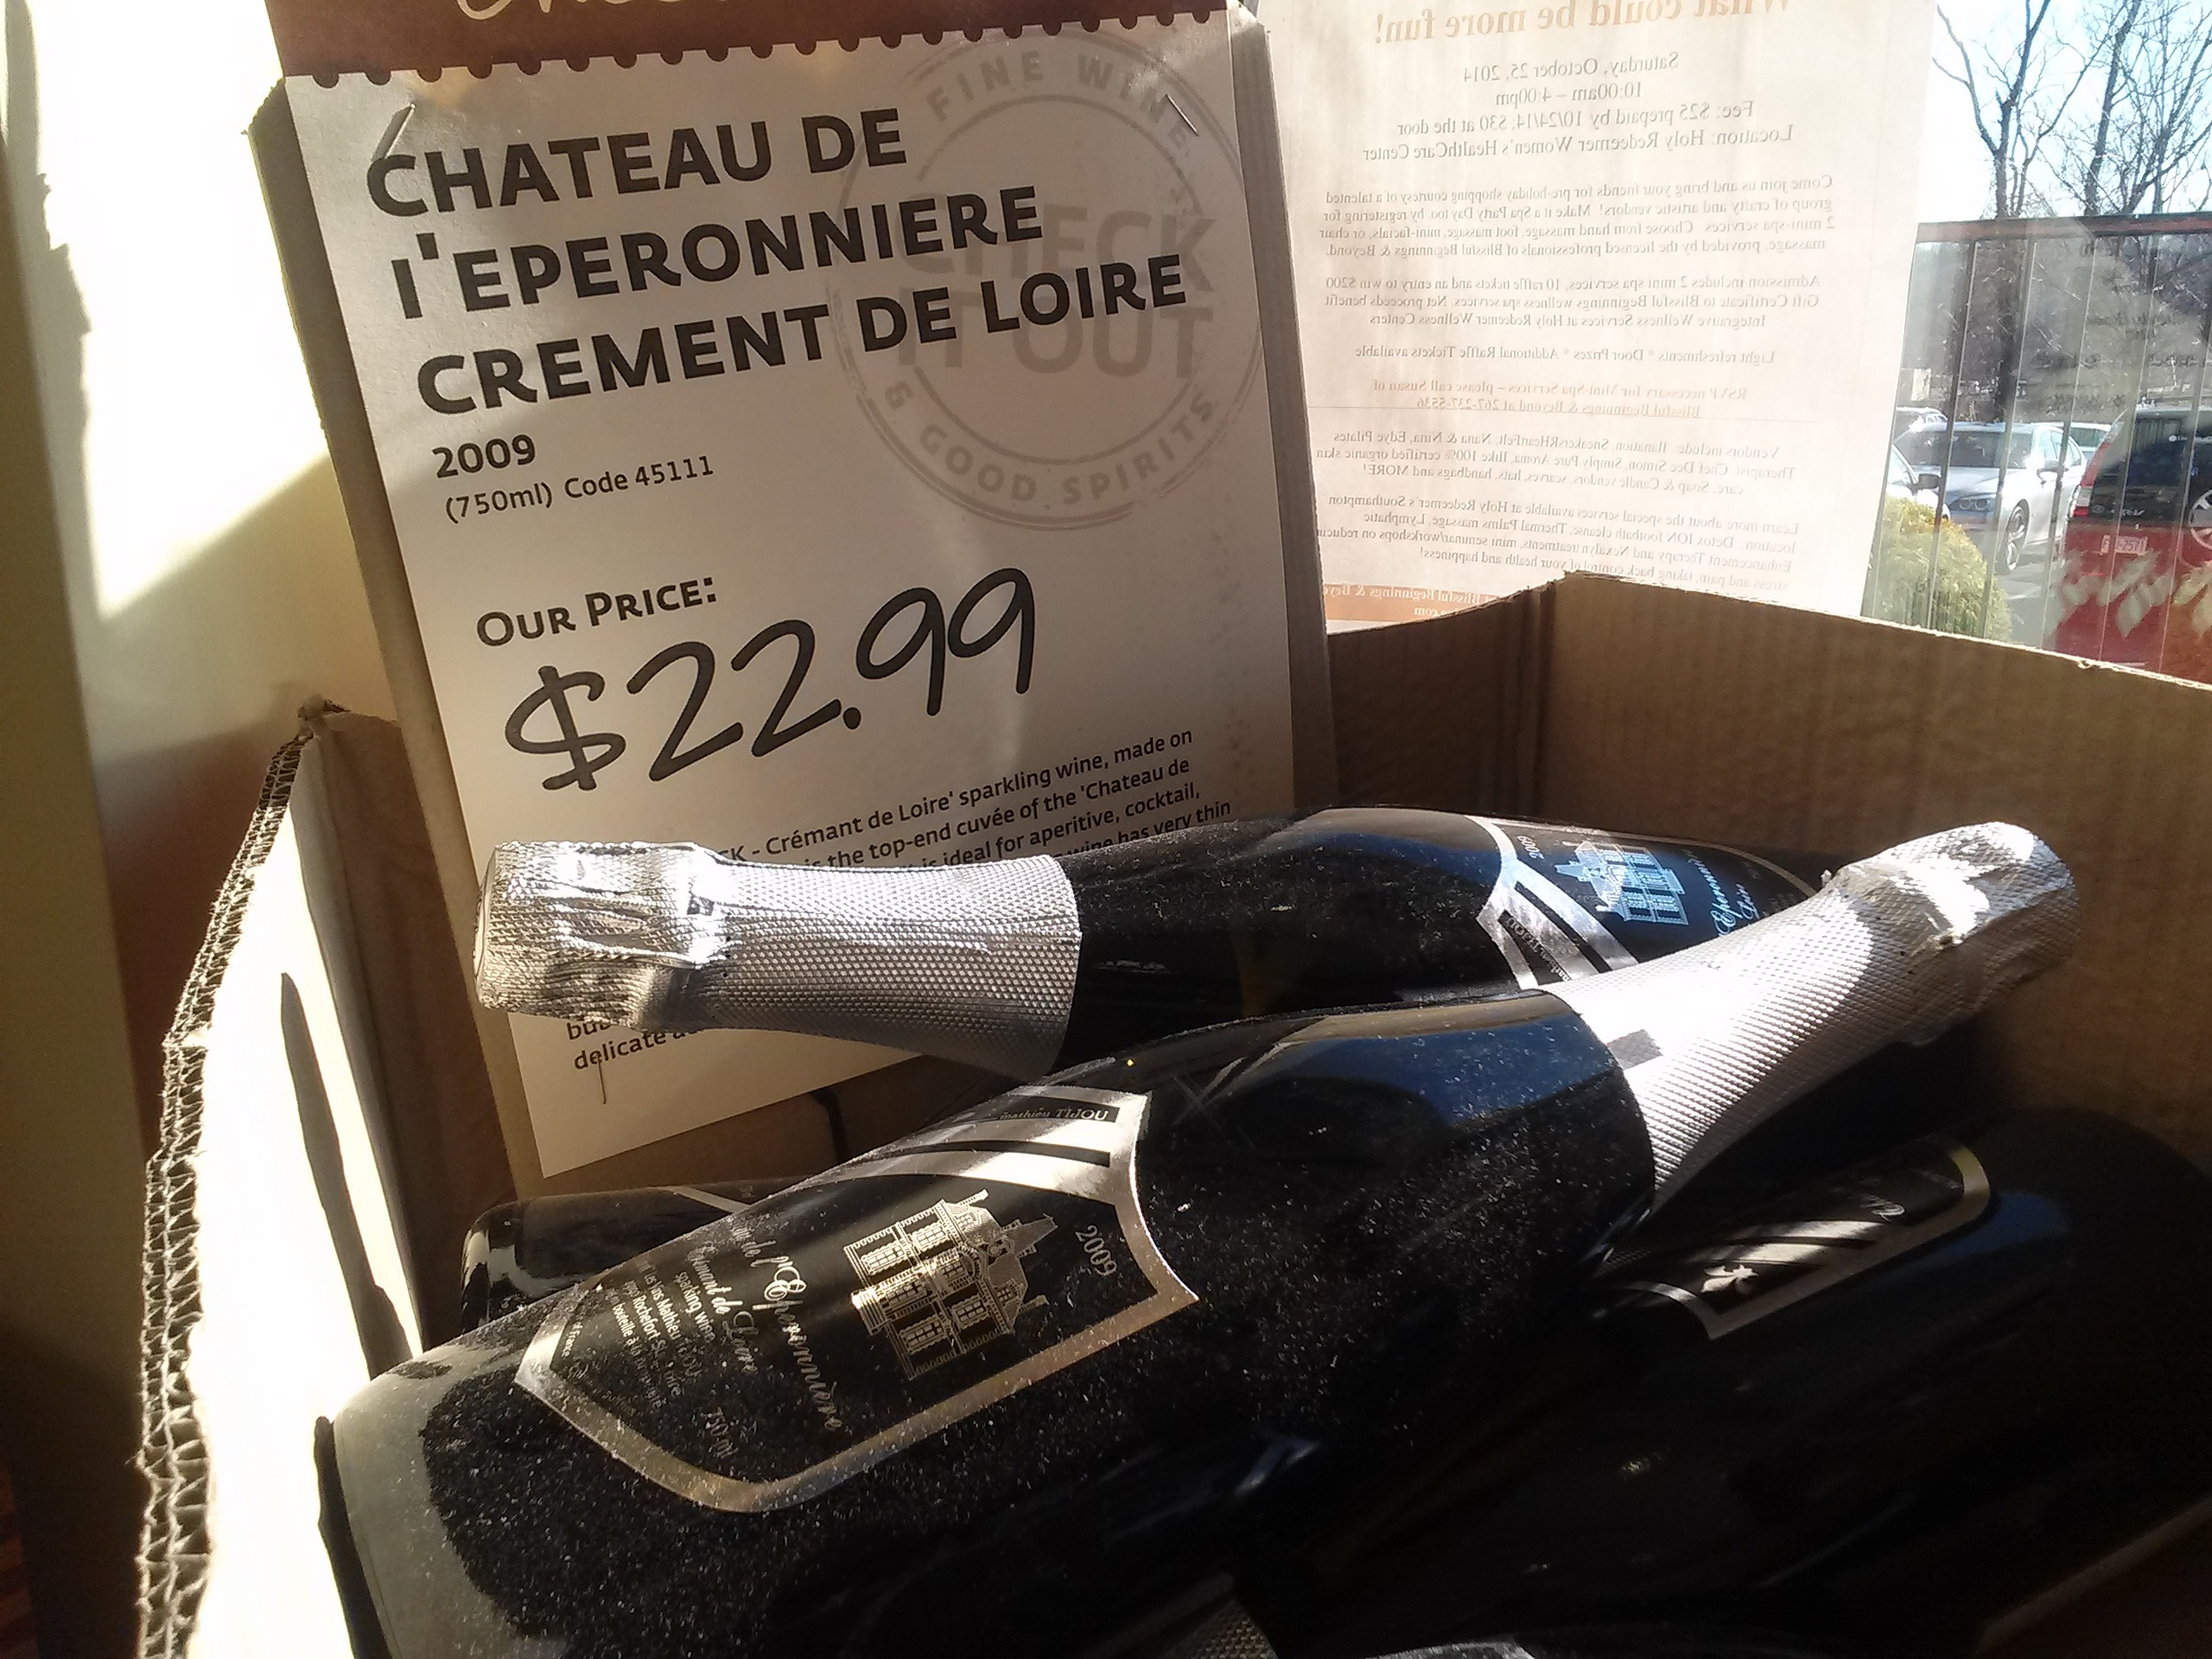 Not quite an expensive Champagne, but $23 is still pricey. It would be frustrating to get this wine home only to find it's been ruined by heat exposure. And if I really want to nitpick, the term is  Cremant , PALCB.